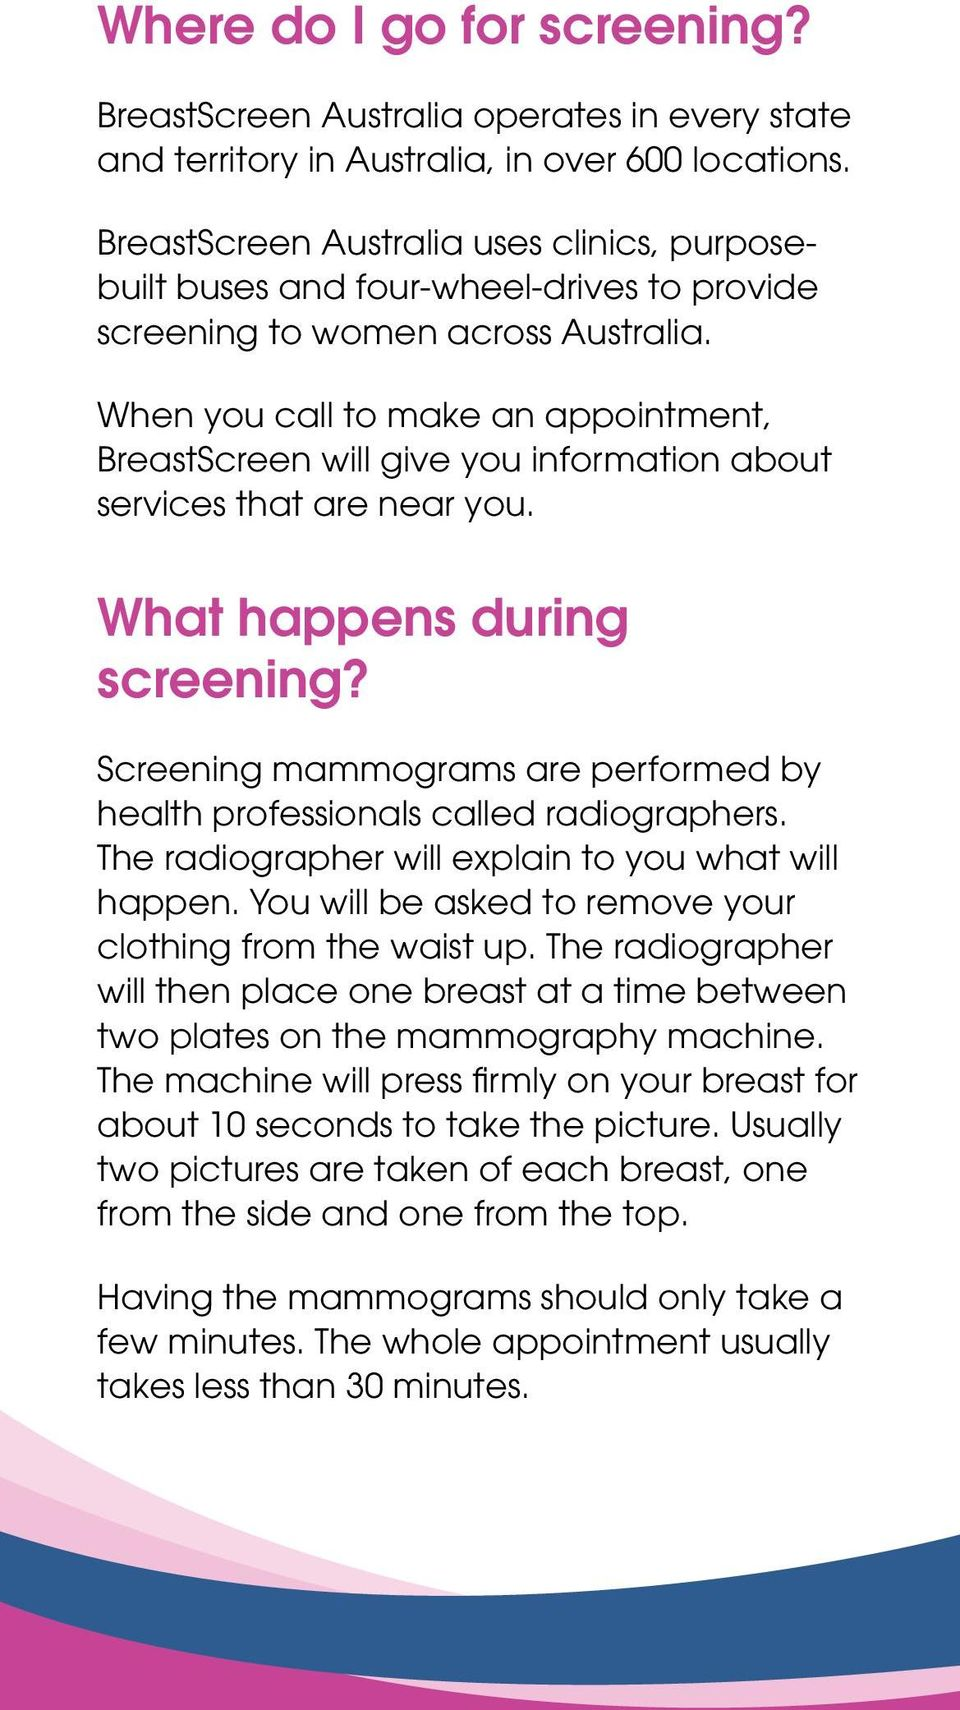 When you call to make an appointment, BreastScreen will give you information about services that are near you. What happens during screening?